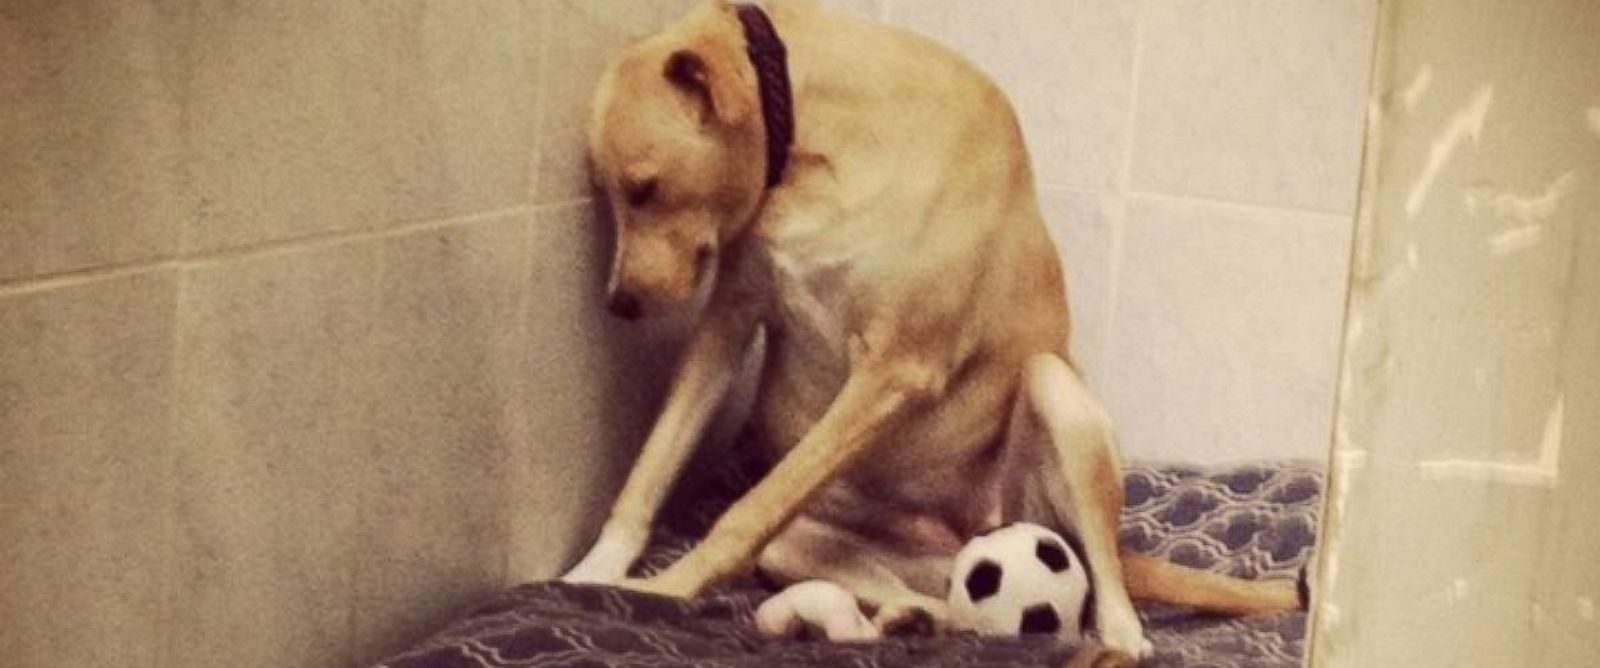 """PHOTO: After a Facebook photo of """"The Saddest Dog in the World"""" went viral, Lana the dog was placed in a temporary foster home and received over 2,000 adoption applications."""